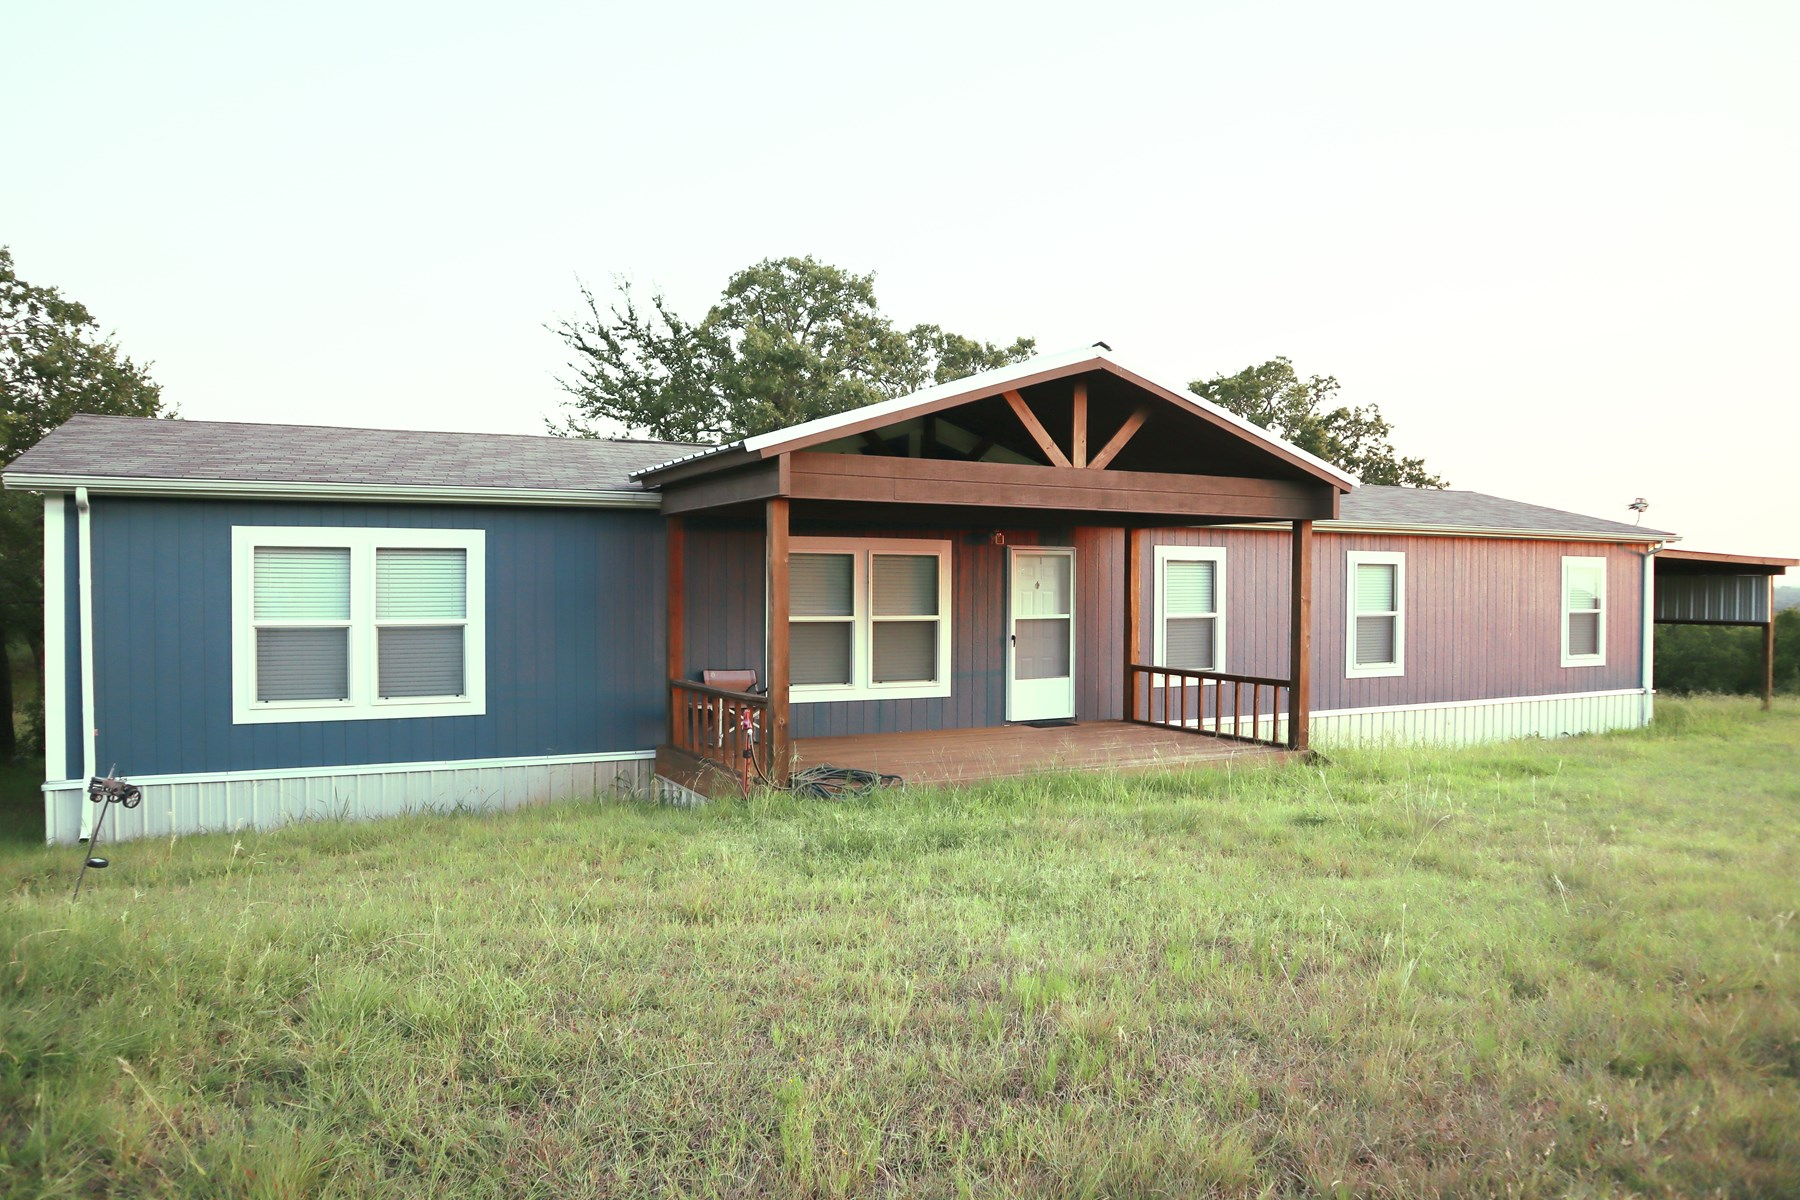 Home for sale in Lone Grove